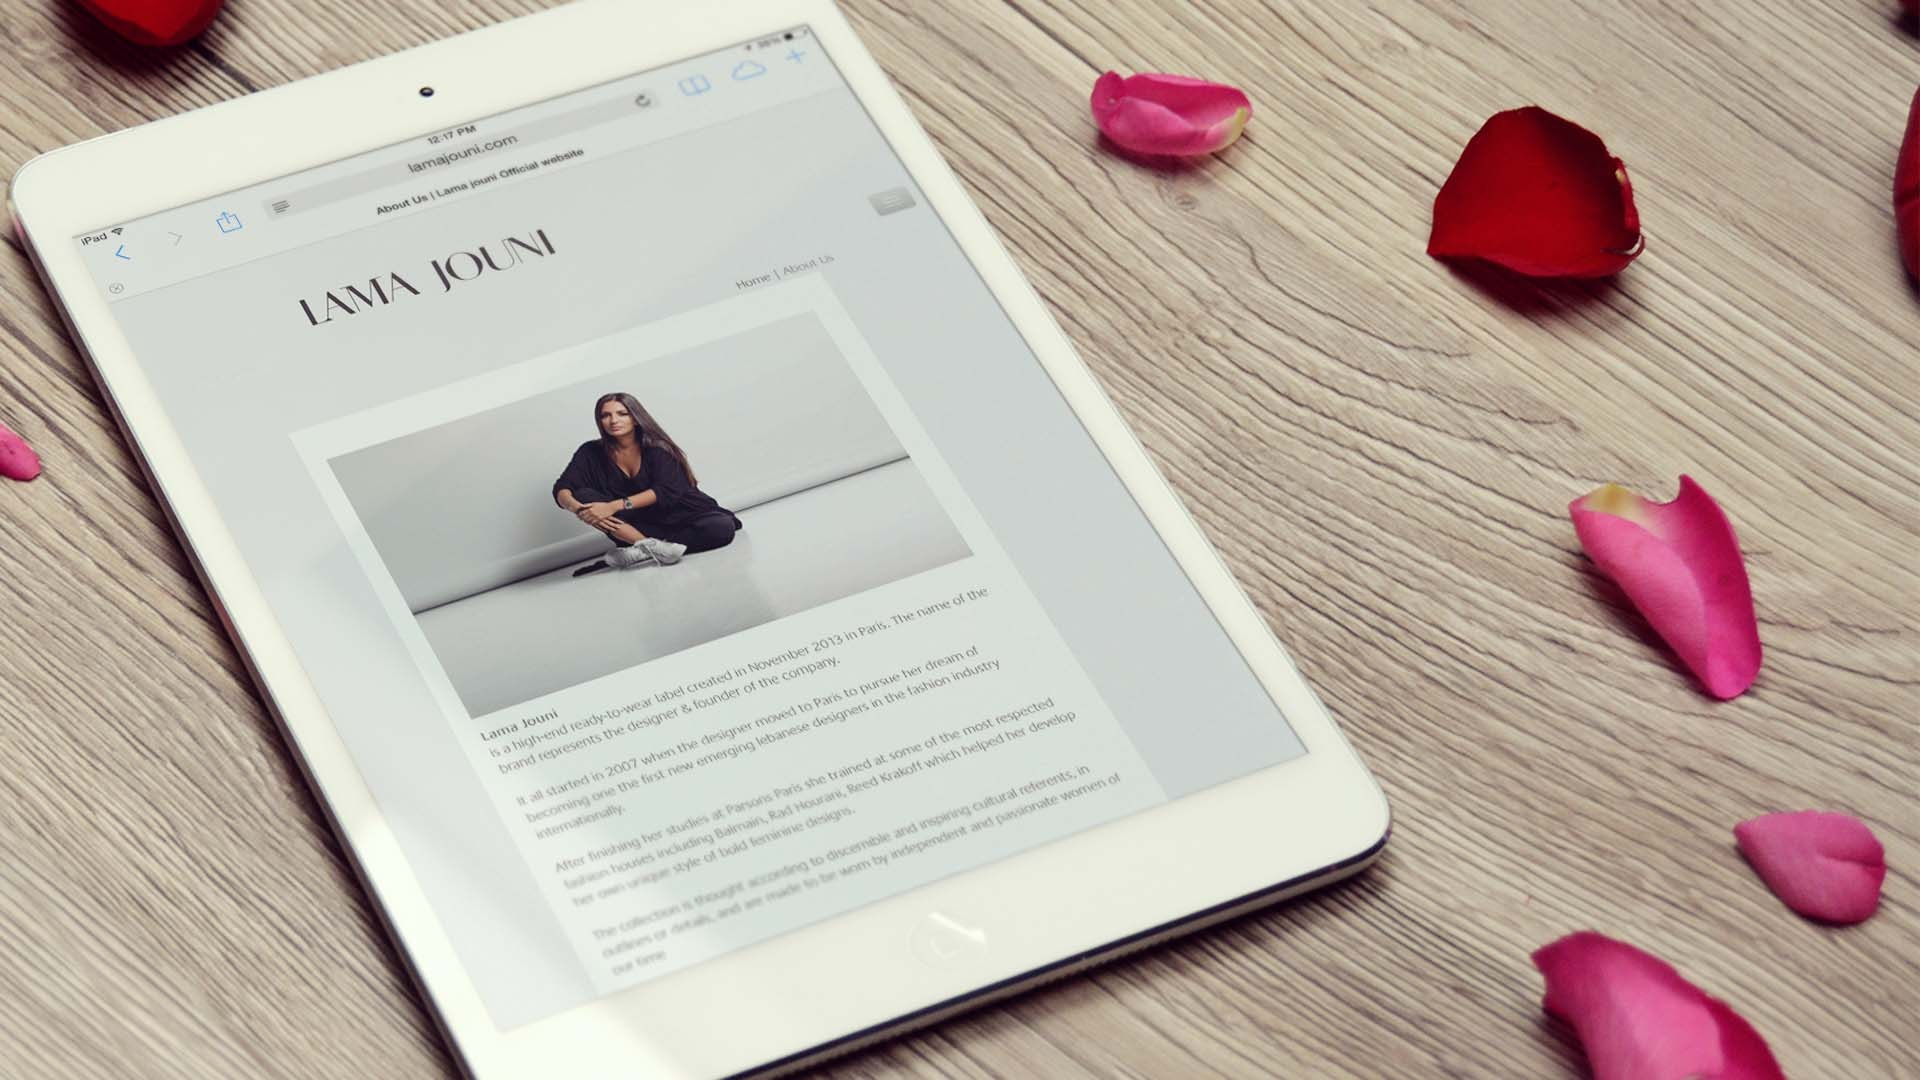 lama-jouni-website-ipad